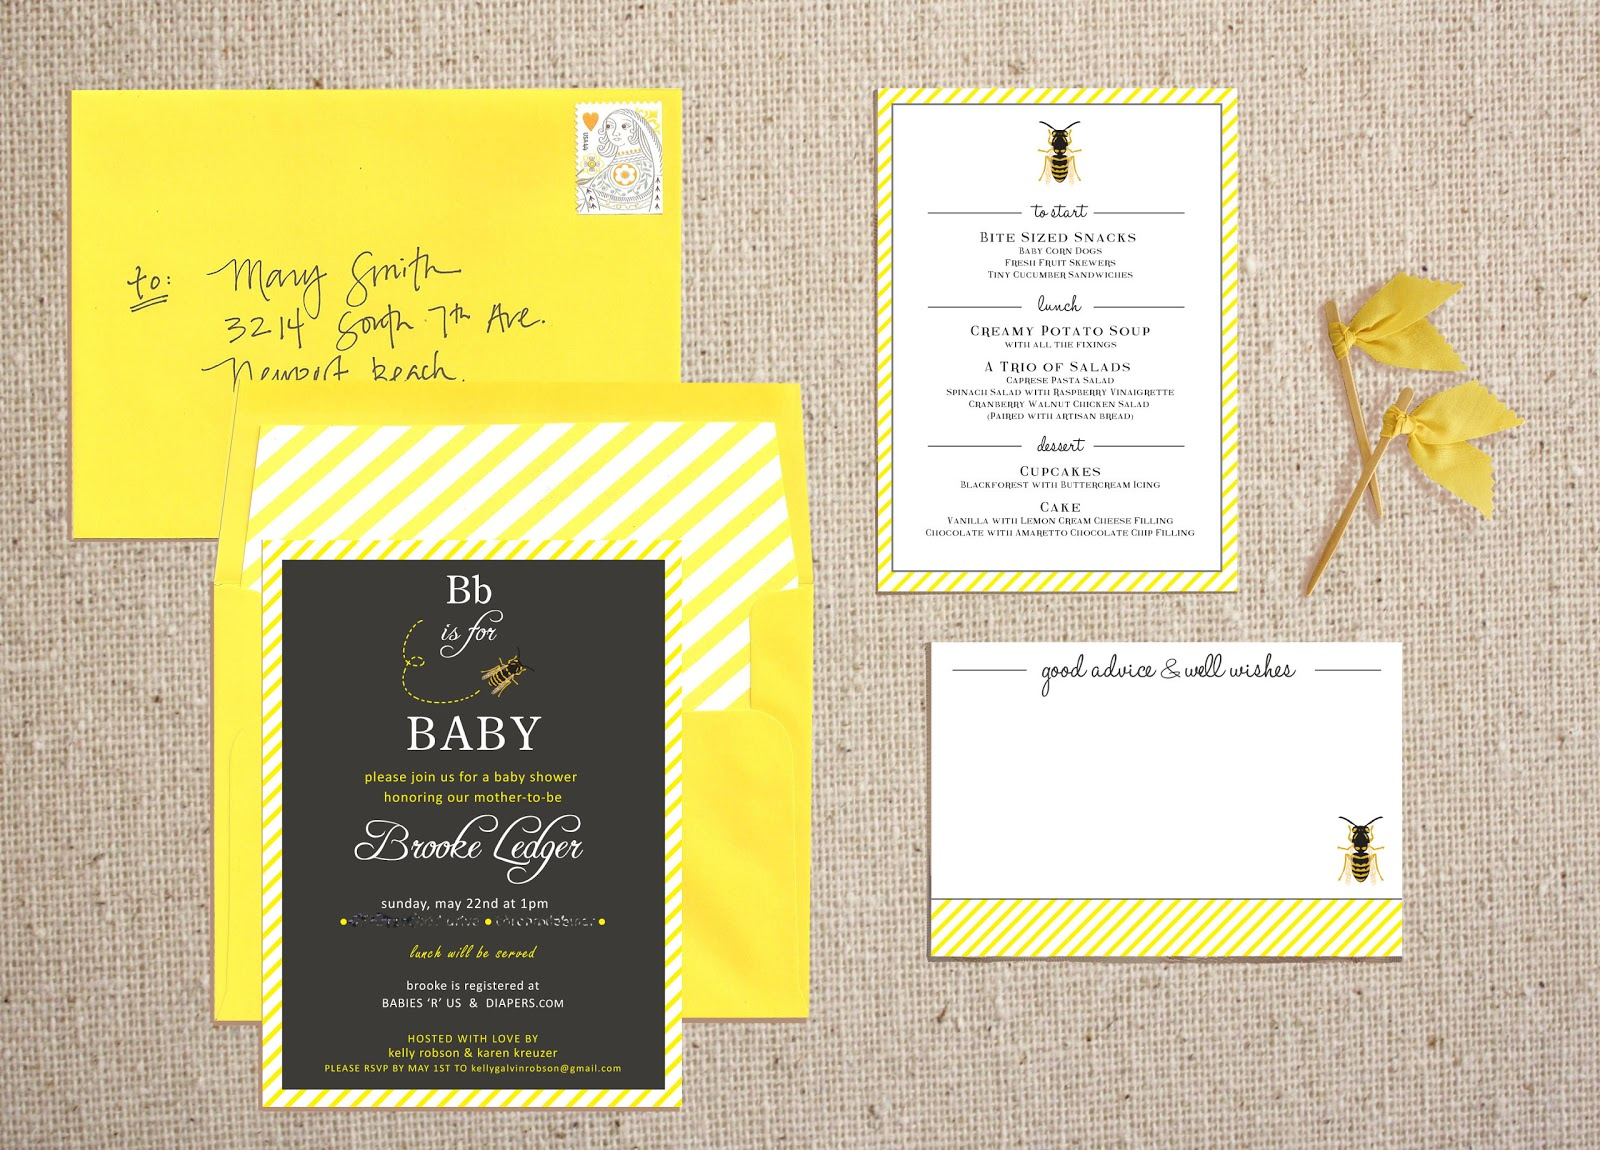 High Street Market: Bb is for Baby Shower (Invitations)